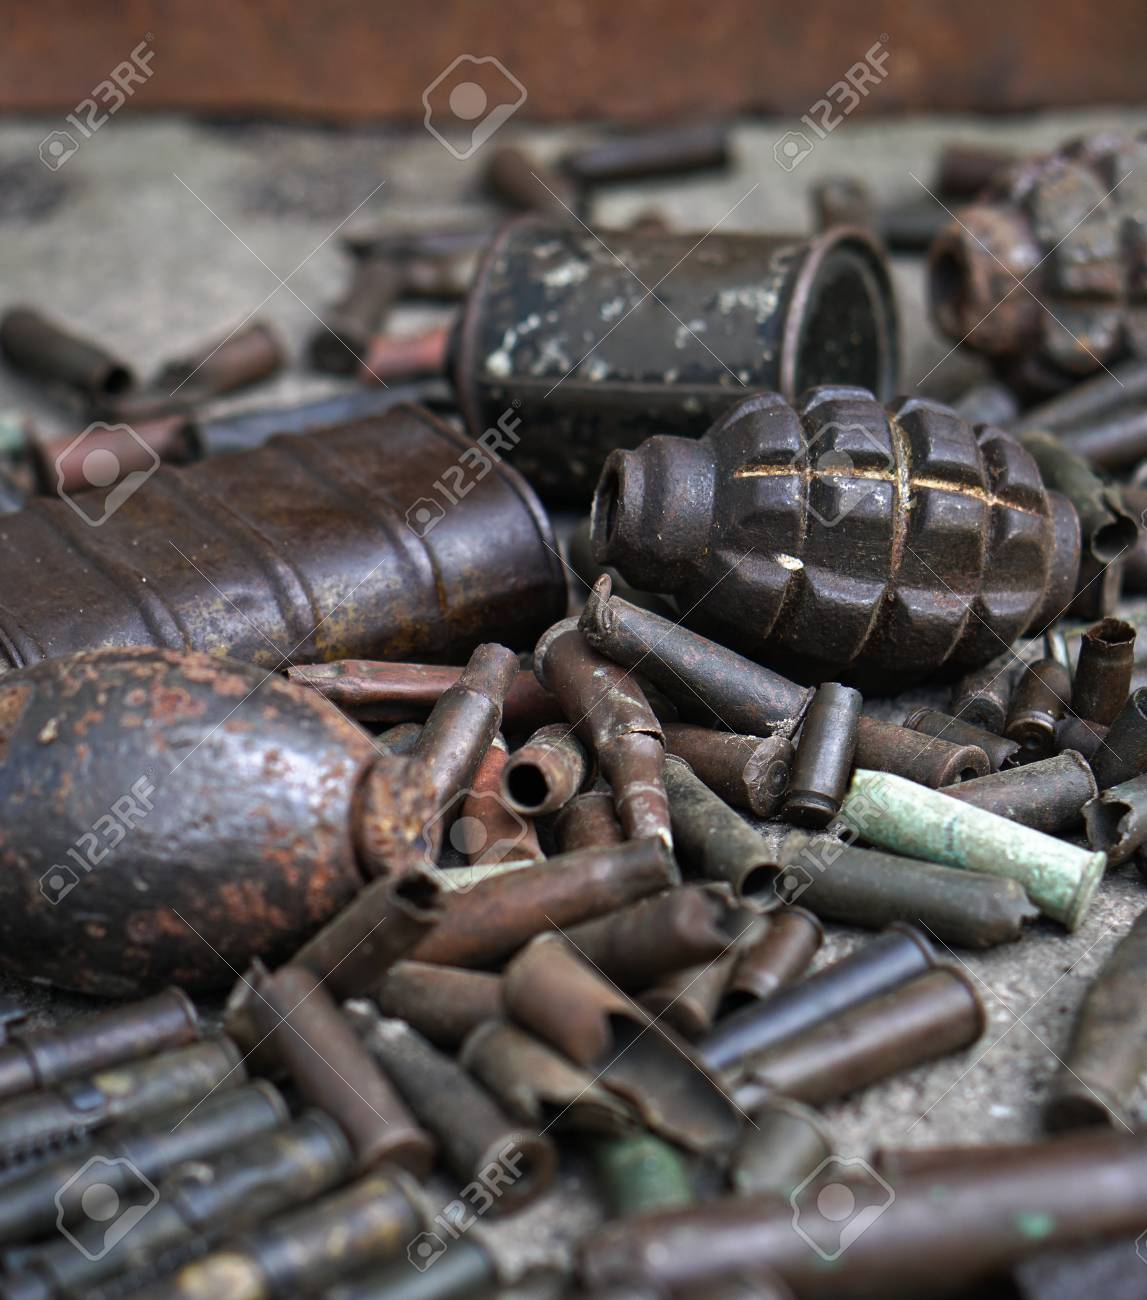 Military background with cartridges of grenades and machine-gun